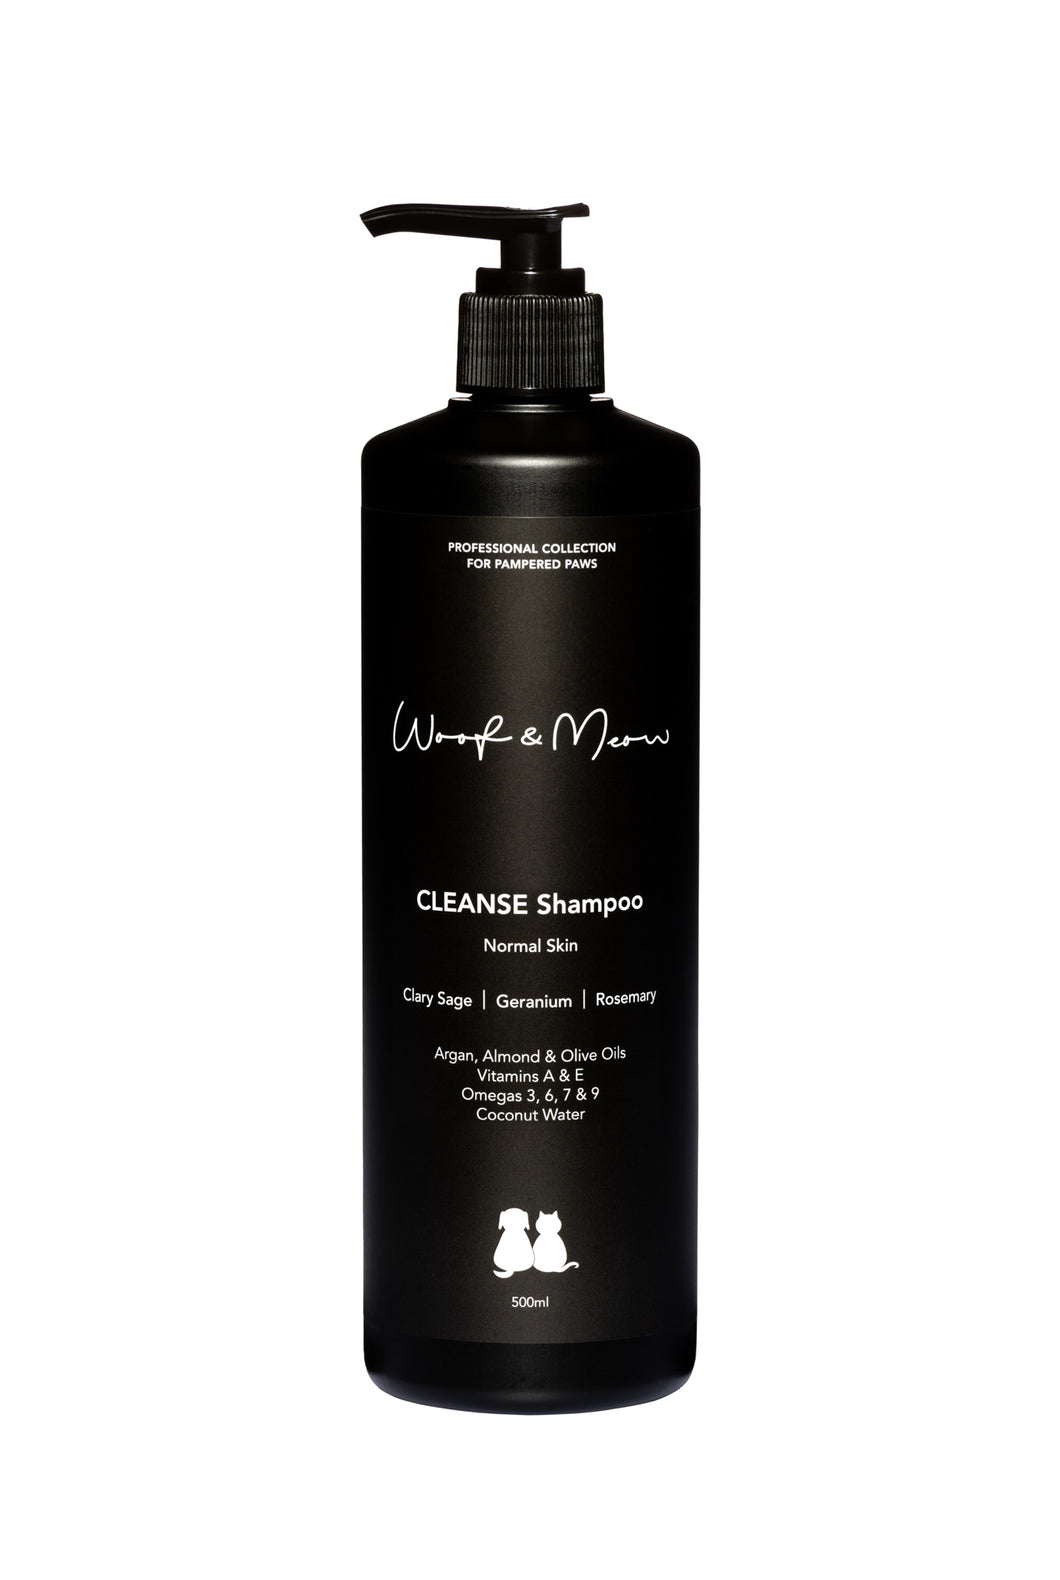 Cleanse Shampoo (Clary Sage, Geranium, Rosemary) - for NORMAL SKIN 5L